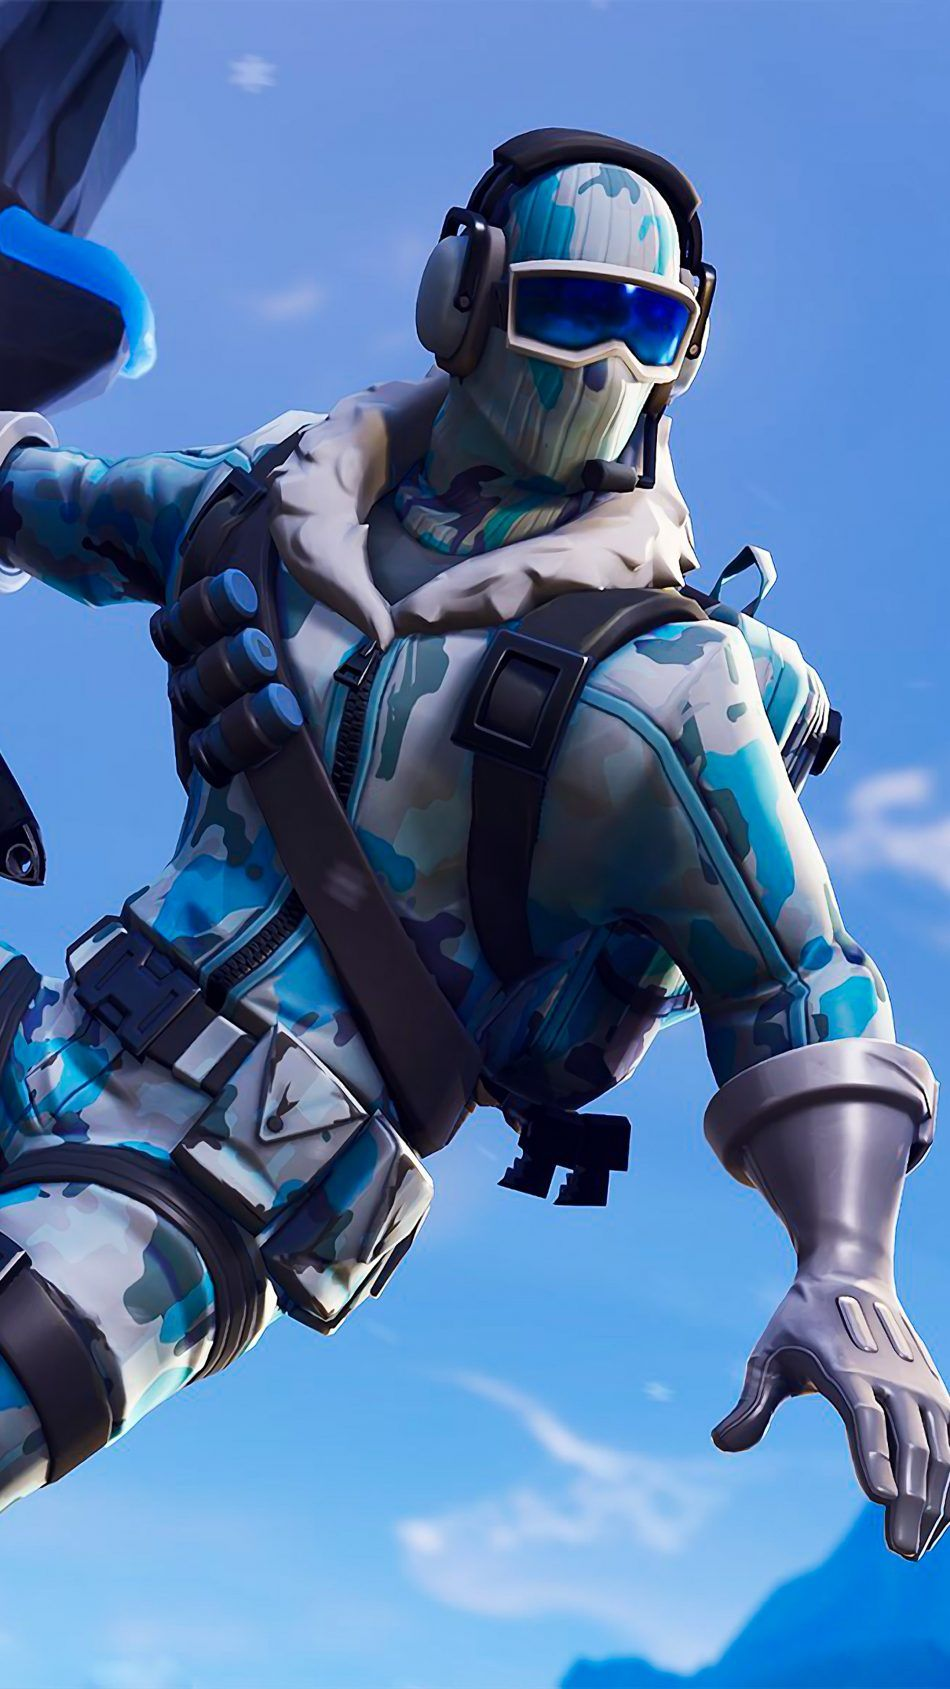 Fortnite Deep Freeze Bundle 4k Ultra Hd Mobile Wallpaper Best Gaming Wallpapers Gaming Wallpapers Gamer Pics